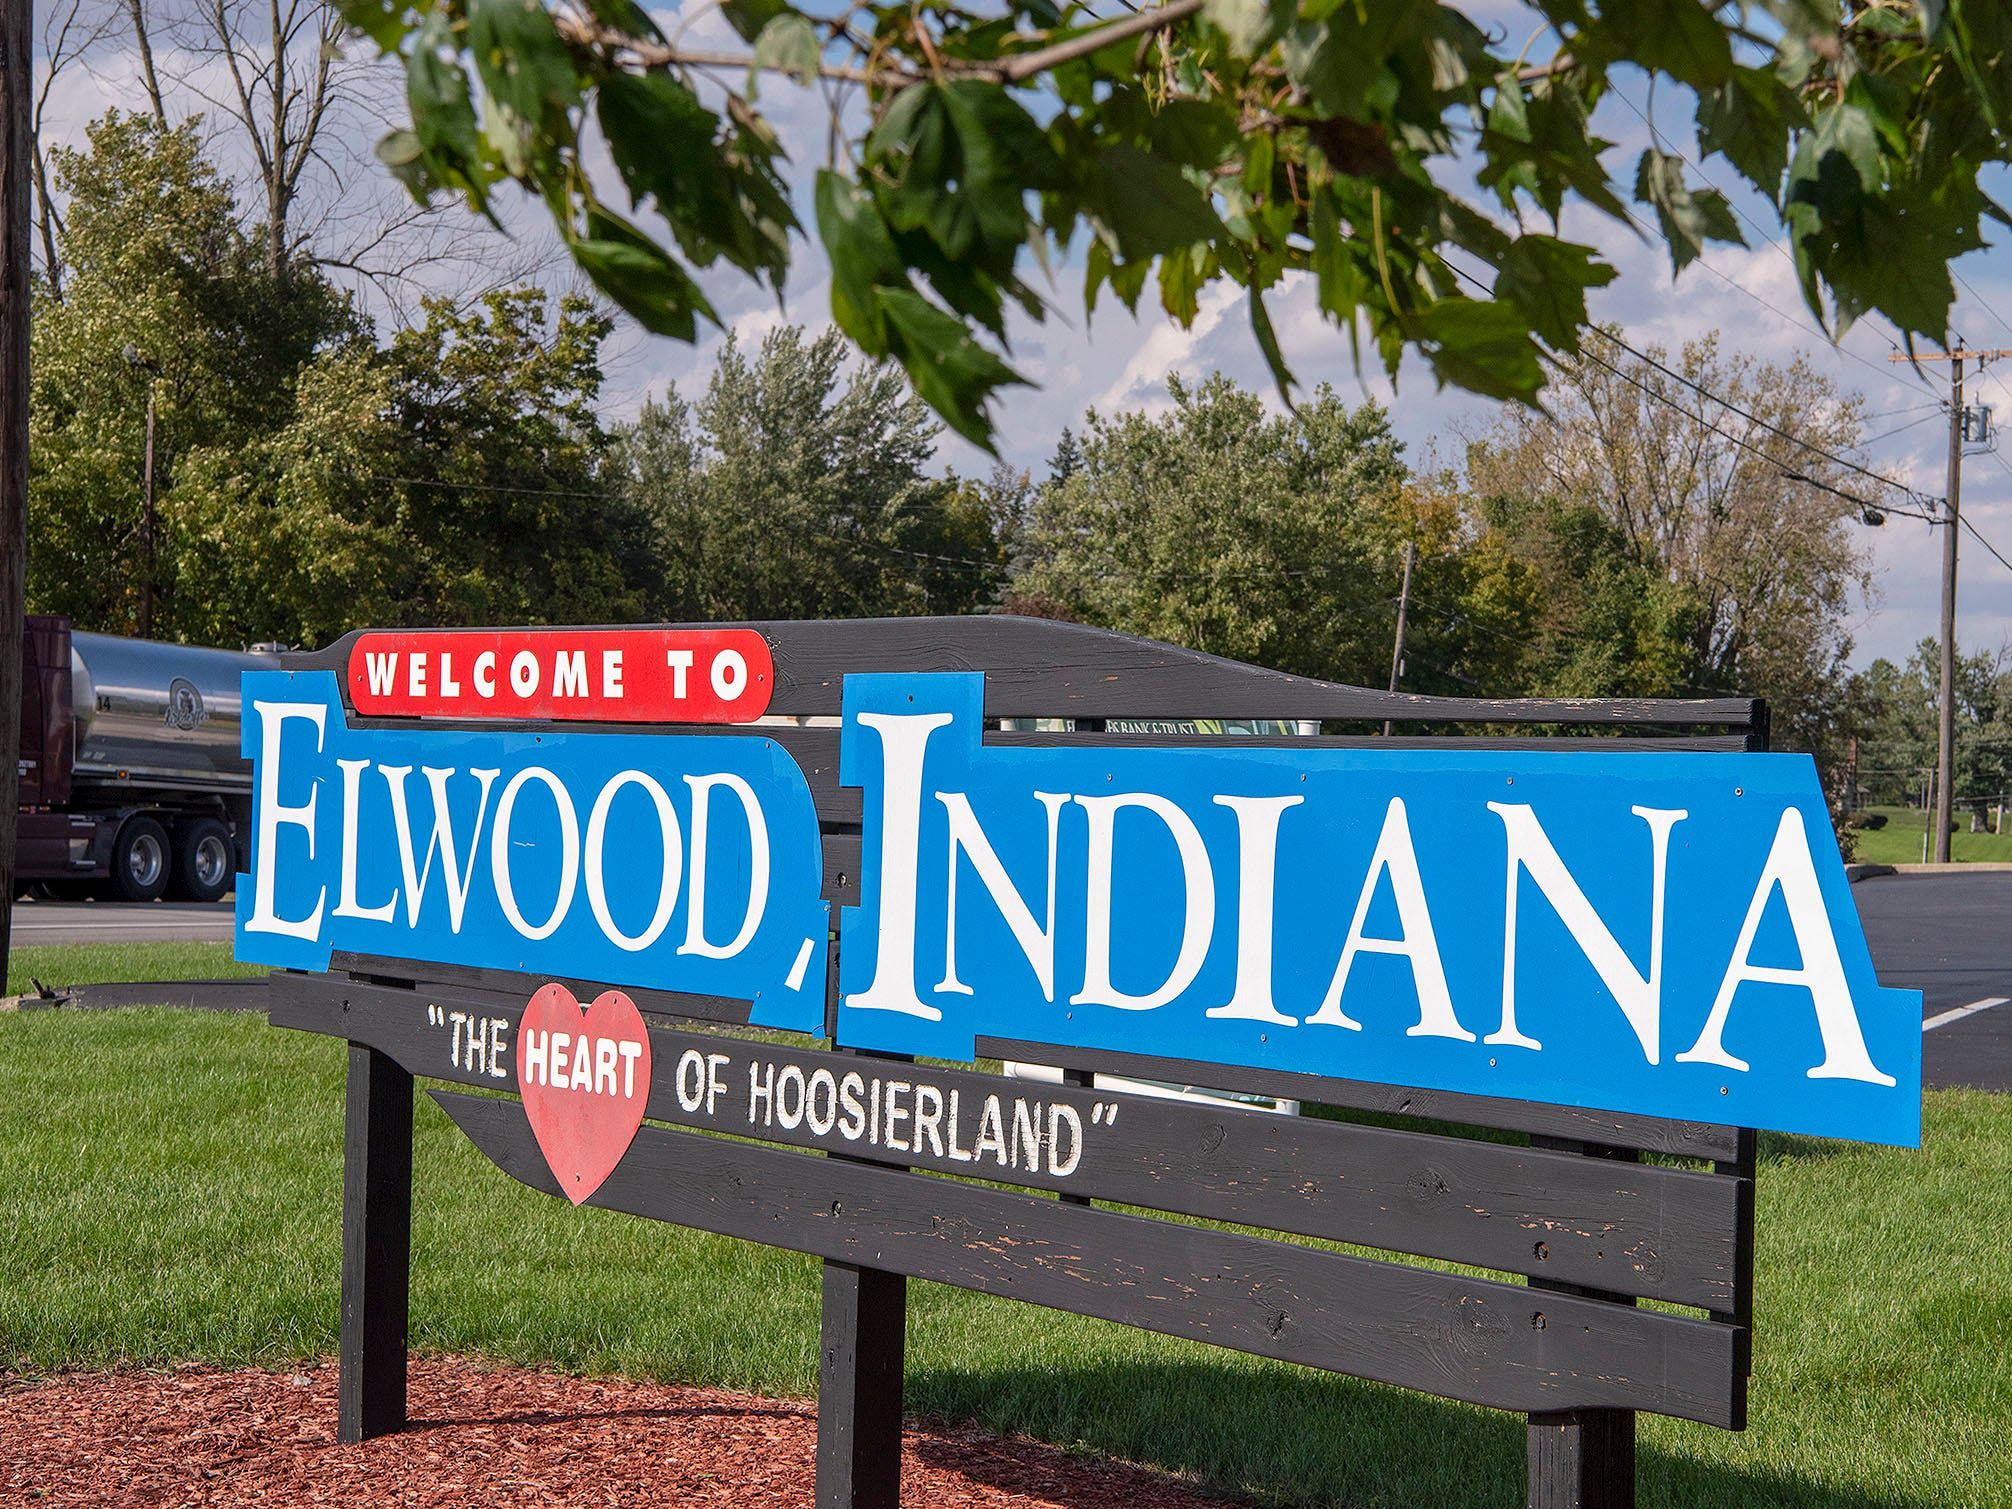 The town of Elwood is the home of Red Gold tomatoes, a four-generation processor that has relationships with more than 50 Midwestern growers. Elwood also is the home of Wendell Willkie, the Republican nominee for president in 1940.